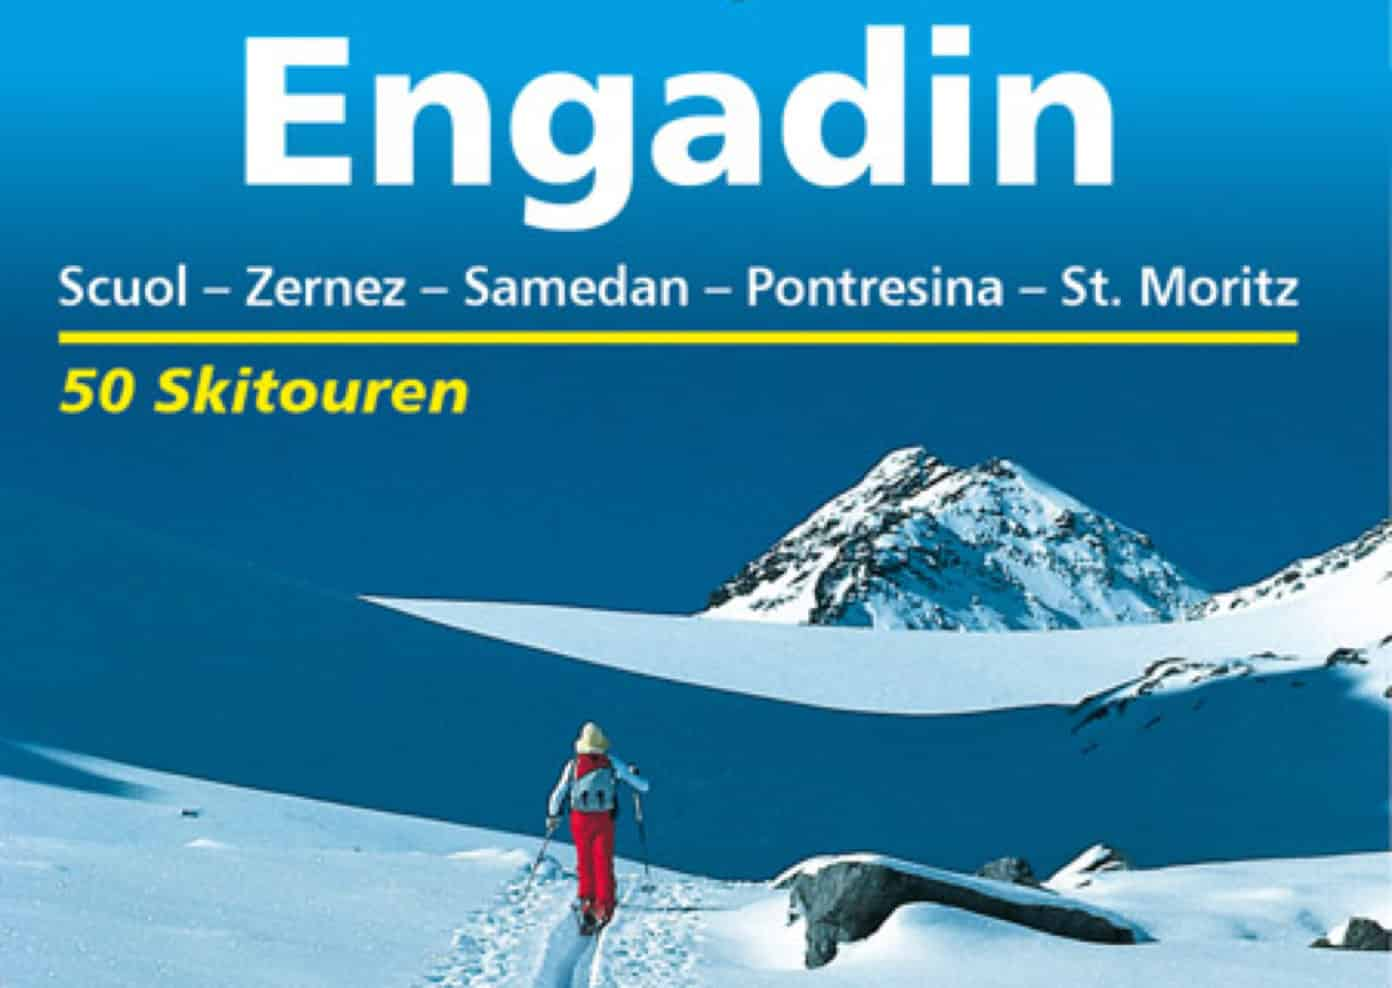 Rother Skitourenfuehrer Engadin Cover 1